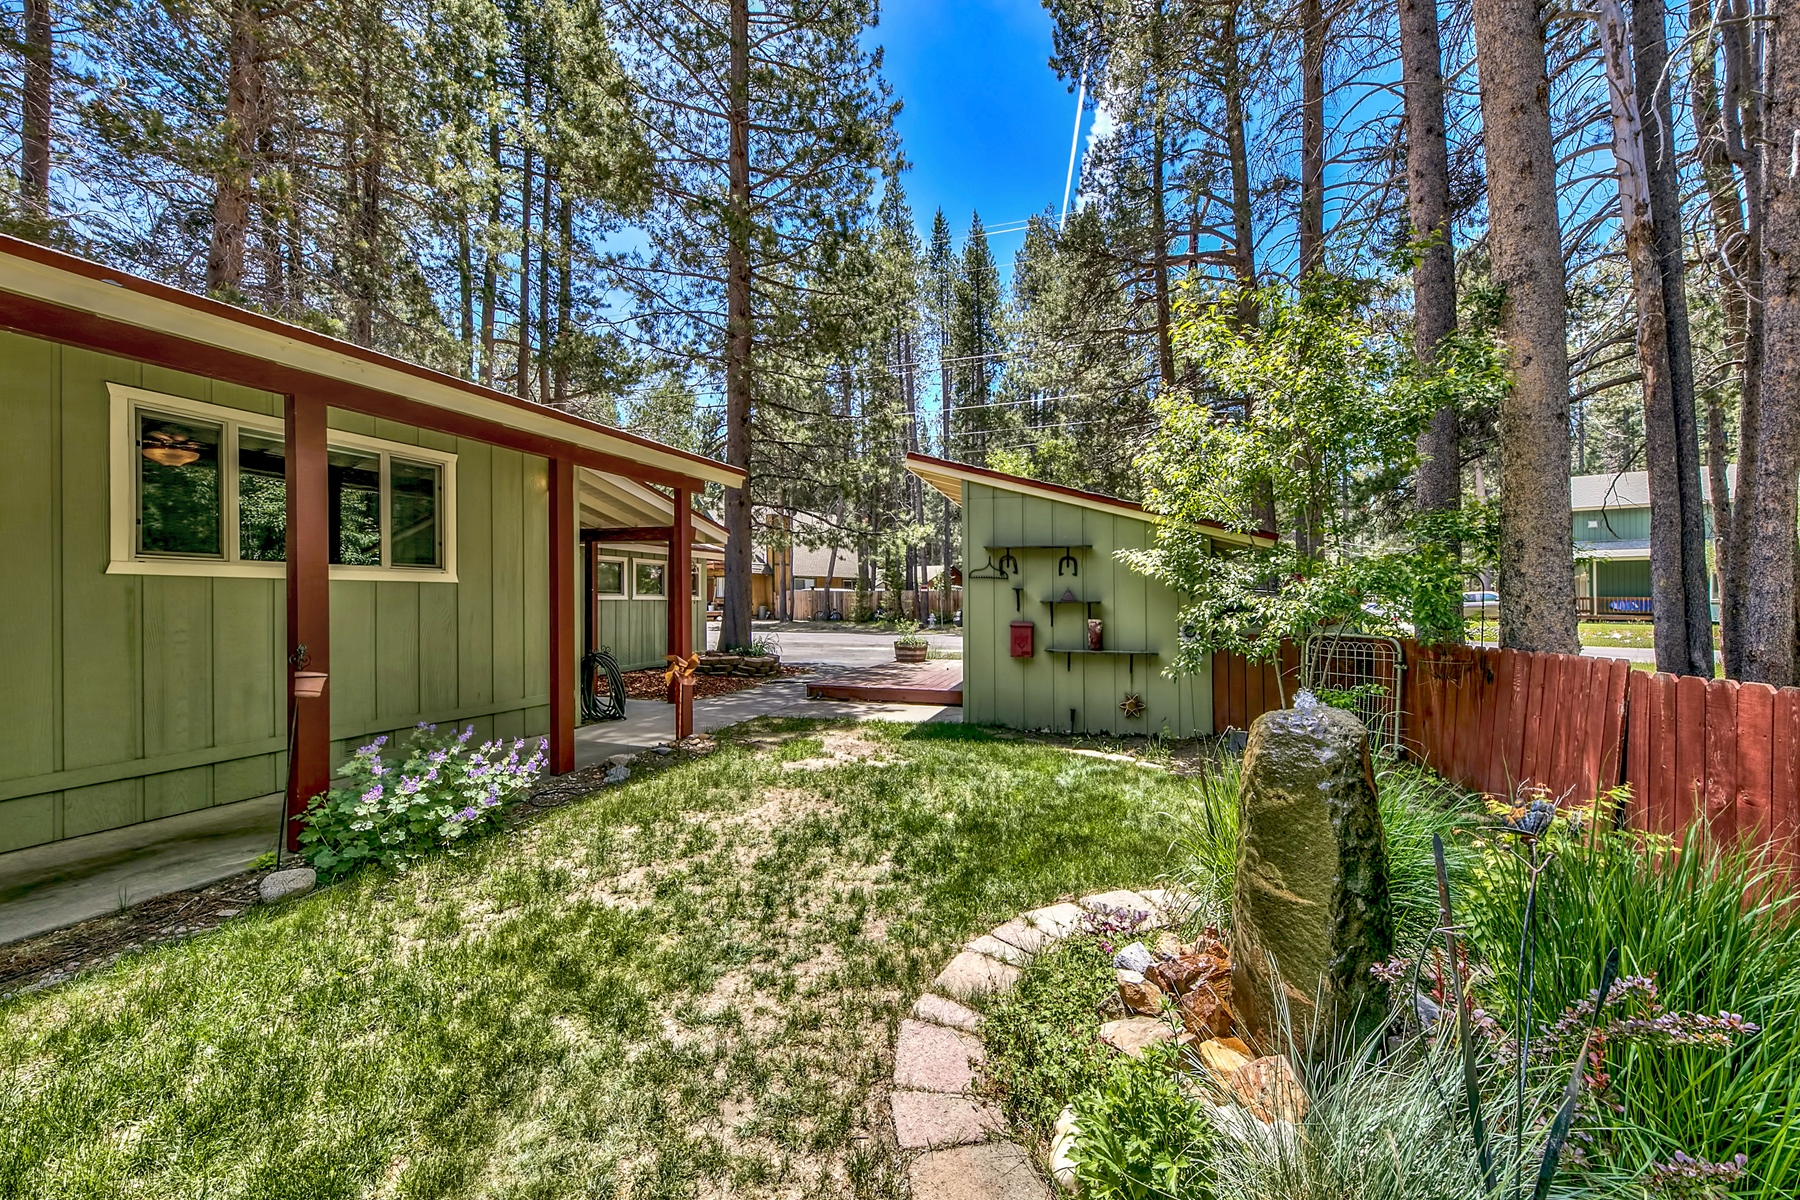 Additional photo for property listing at 841 Michael Drive, South Lake Tahoe, CA 96150 841 Michael Drive South Lake Tahoe, California 96150 United States